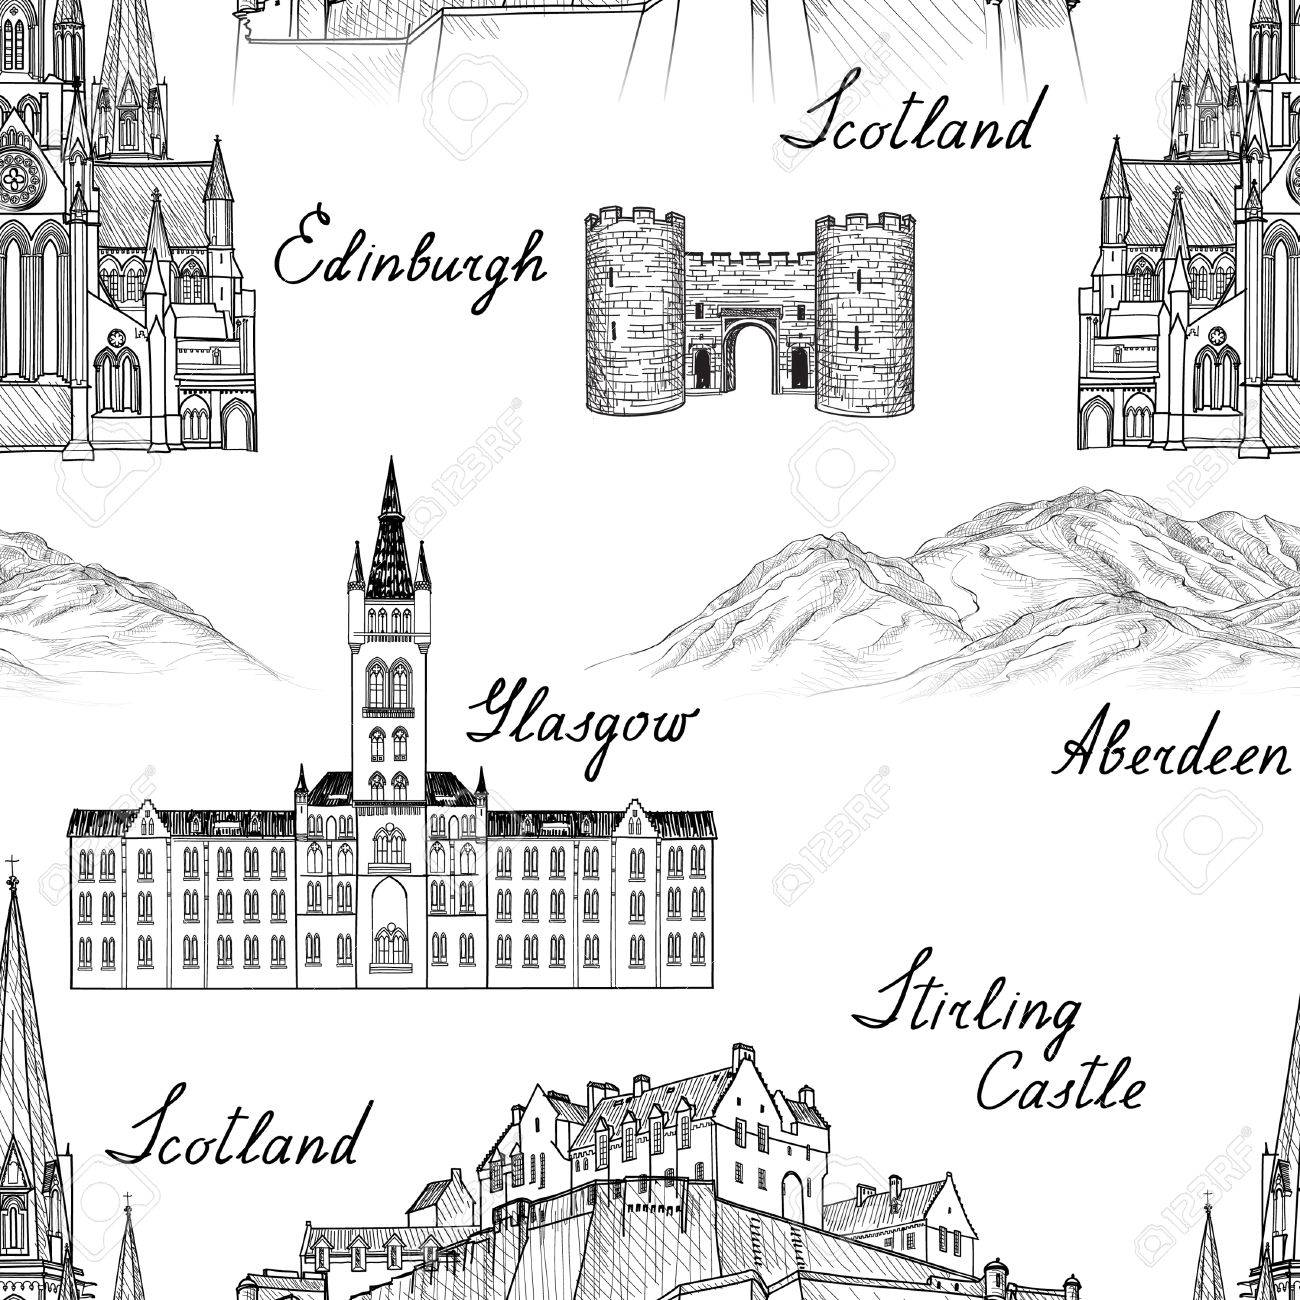 Travel Scotland famous cities landmark with handmade calligraphy. Edinburgh, Glasgow, Aberdeen city seamless pattern for your design. Architectural monuments and buildings engraved sketch UK textured background - 53120491